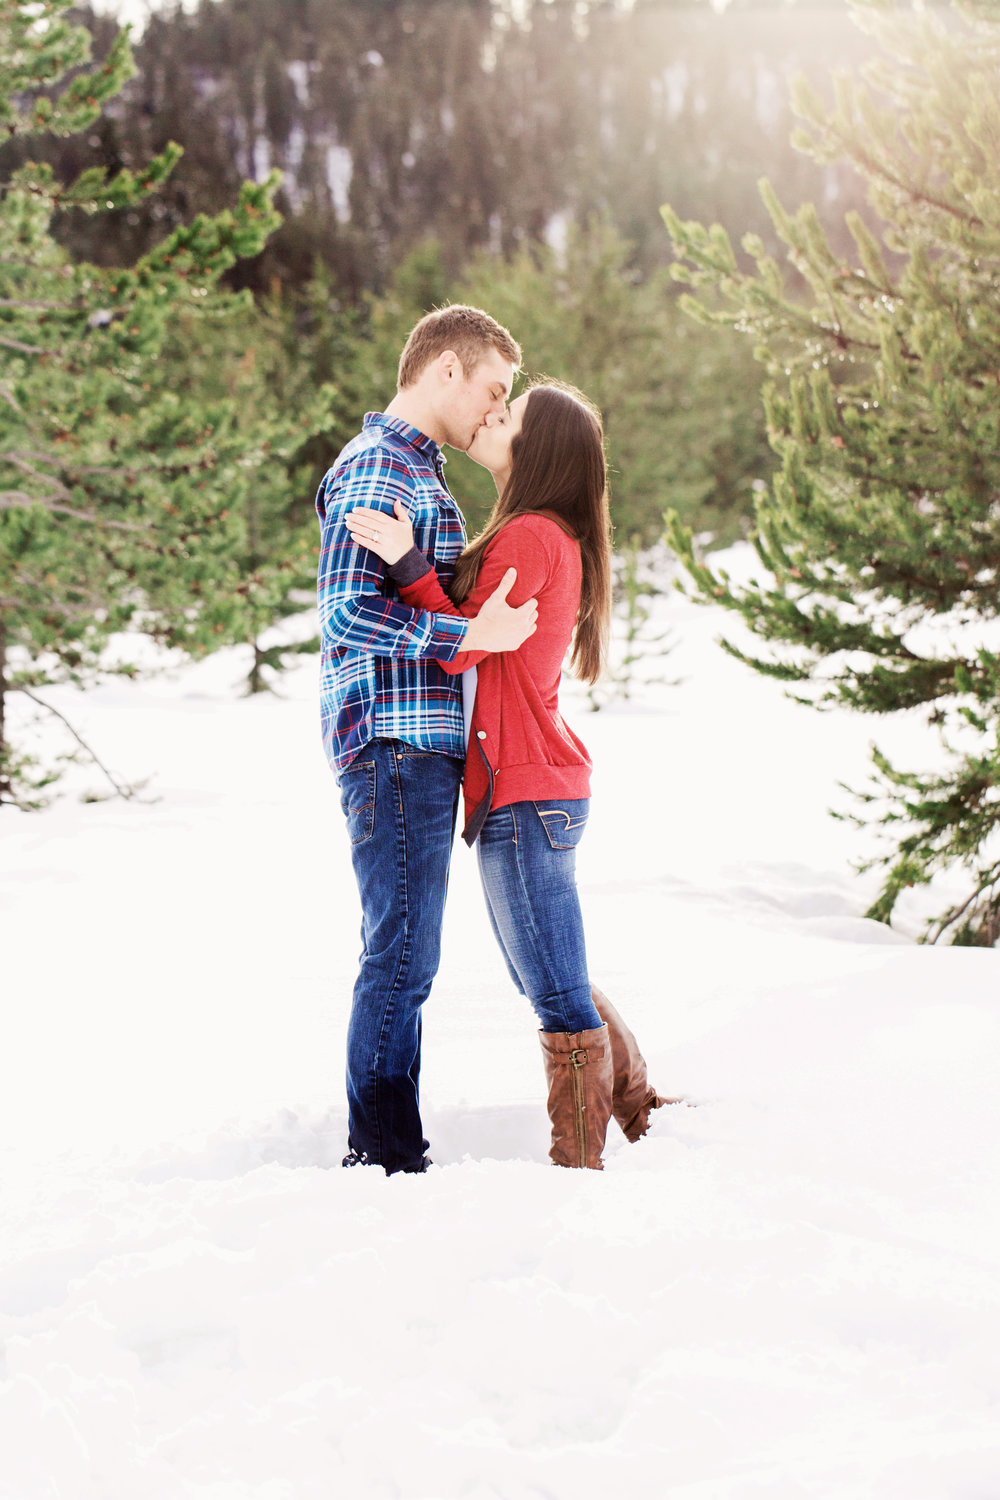 Winter Engagement Photography Tips